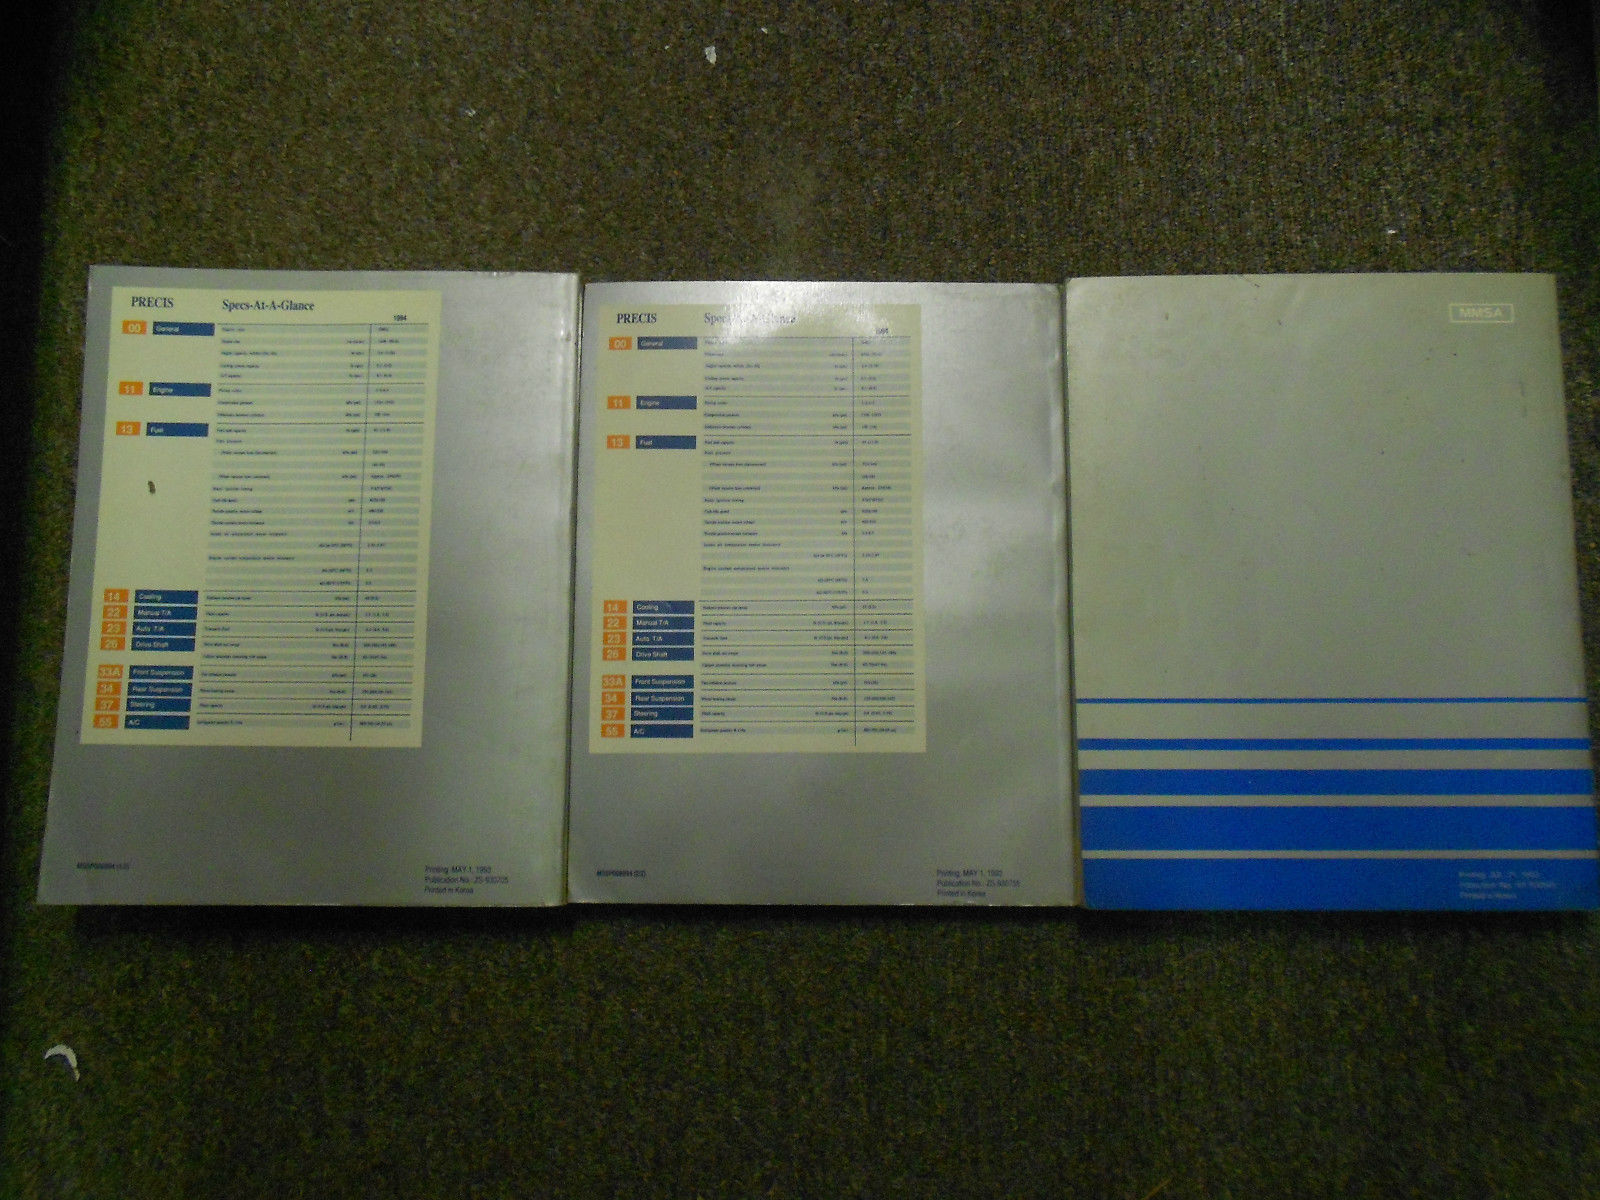 1994 MITSUBISHI Precis Service Repair Shop Manual FACTORY 3 VOL SET OEM BOOK 94